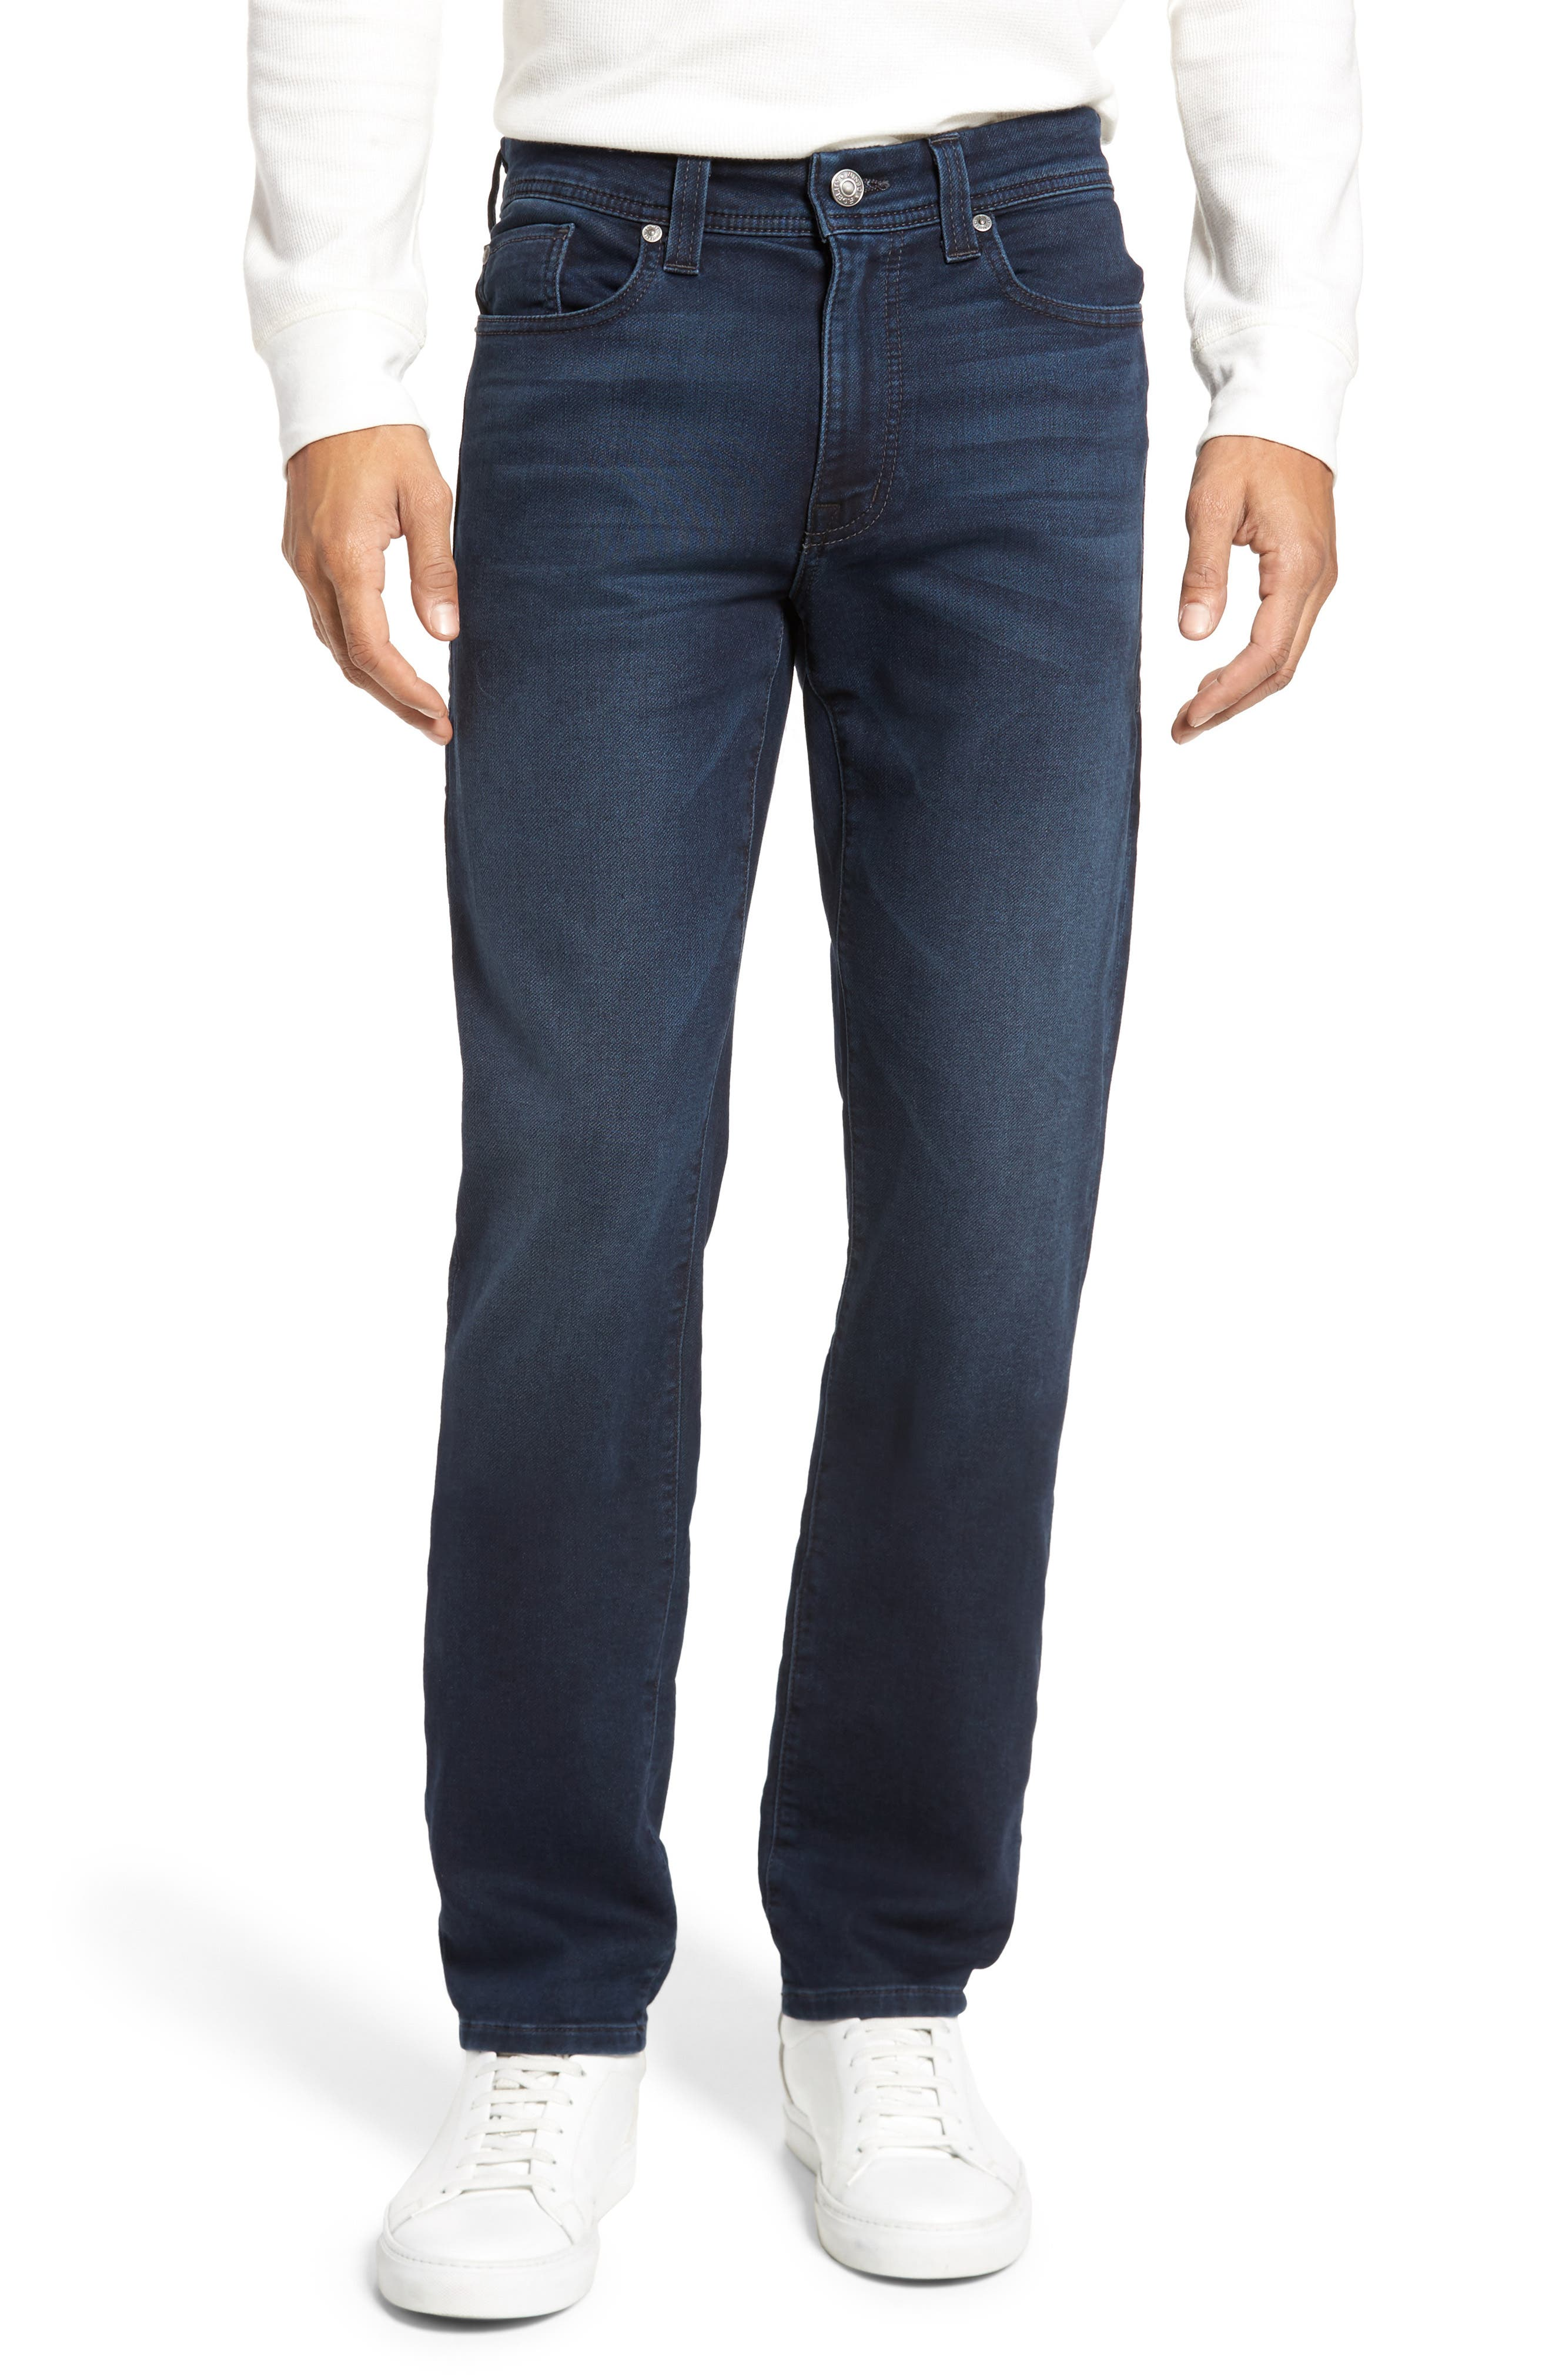 Jimmy Slim Straight Fit Jeans,                         Main,                         color, Oxy Twilight